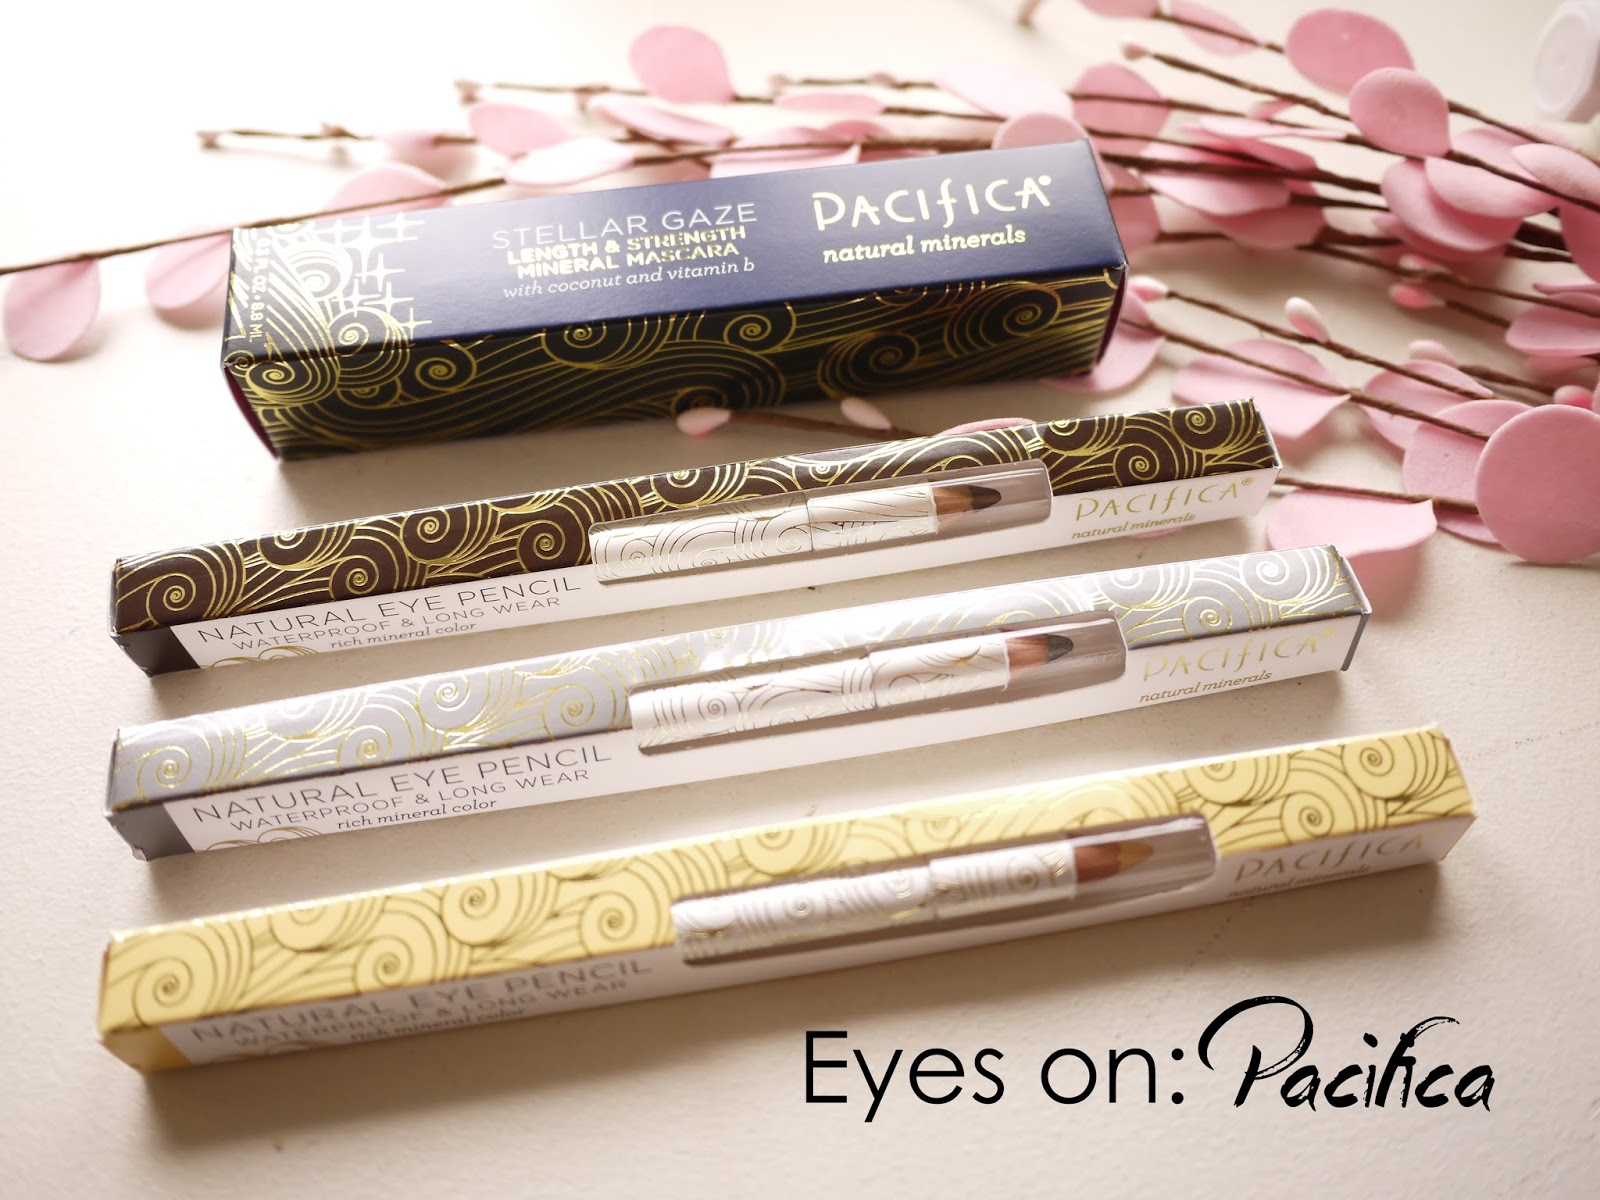 Pacifica Stellar Gaze length and strength Mascara and Fringe, Gun Metal and Bare Eye Pencils review